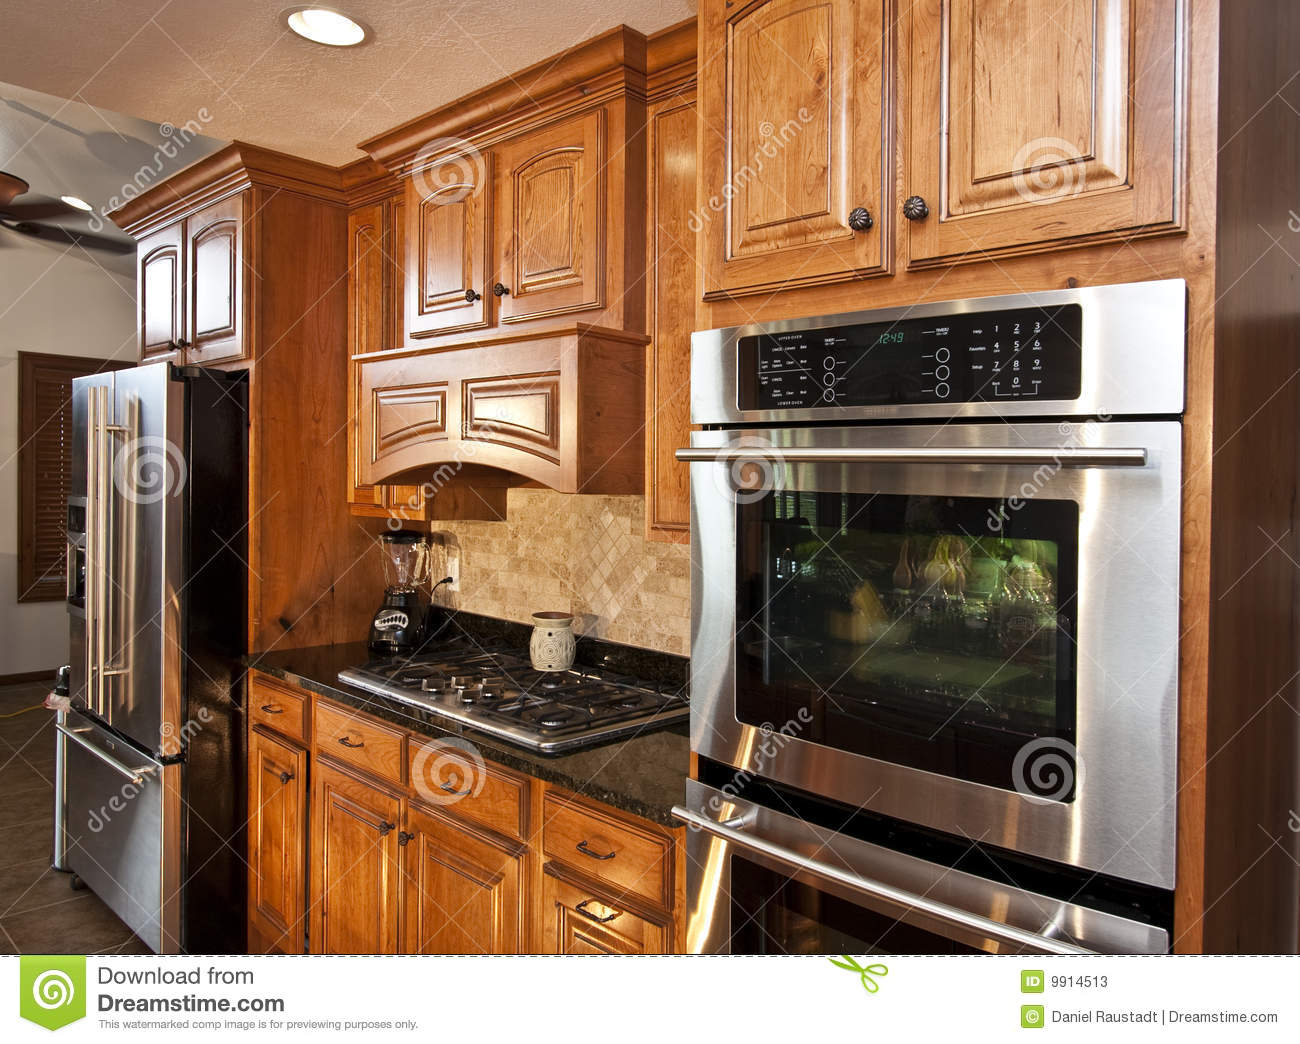 New modern kitchen appliances stock photos image 9914513 for New modern kitchen pictures